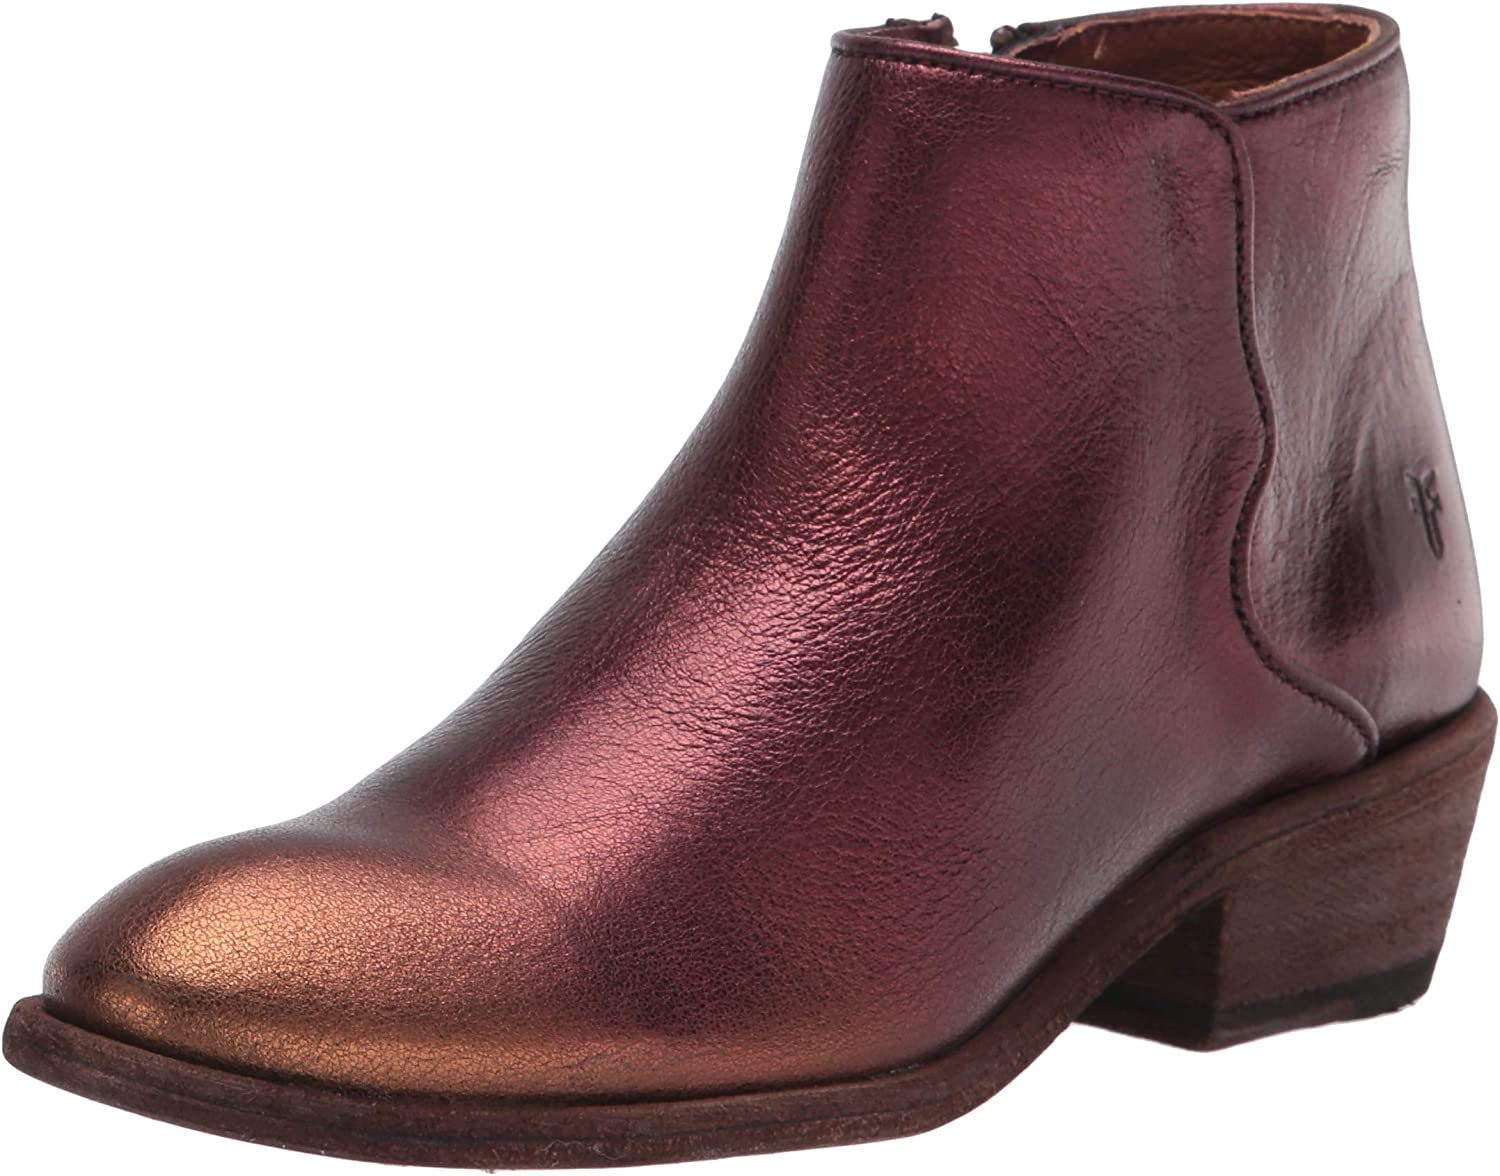 Frye Women's Carson Piping Ankle Boot